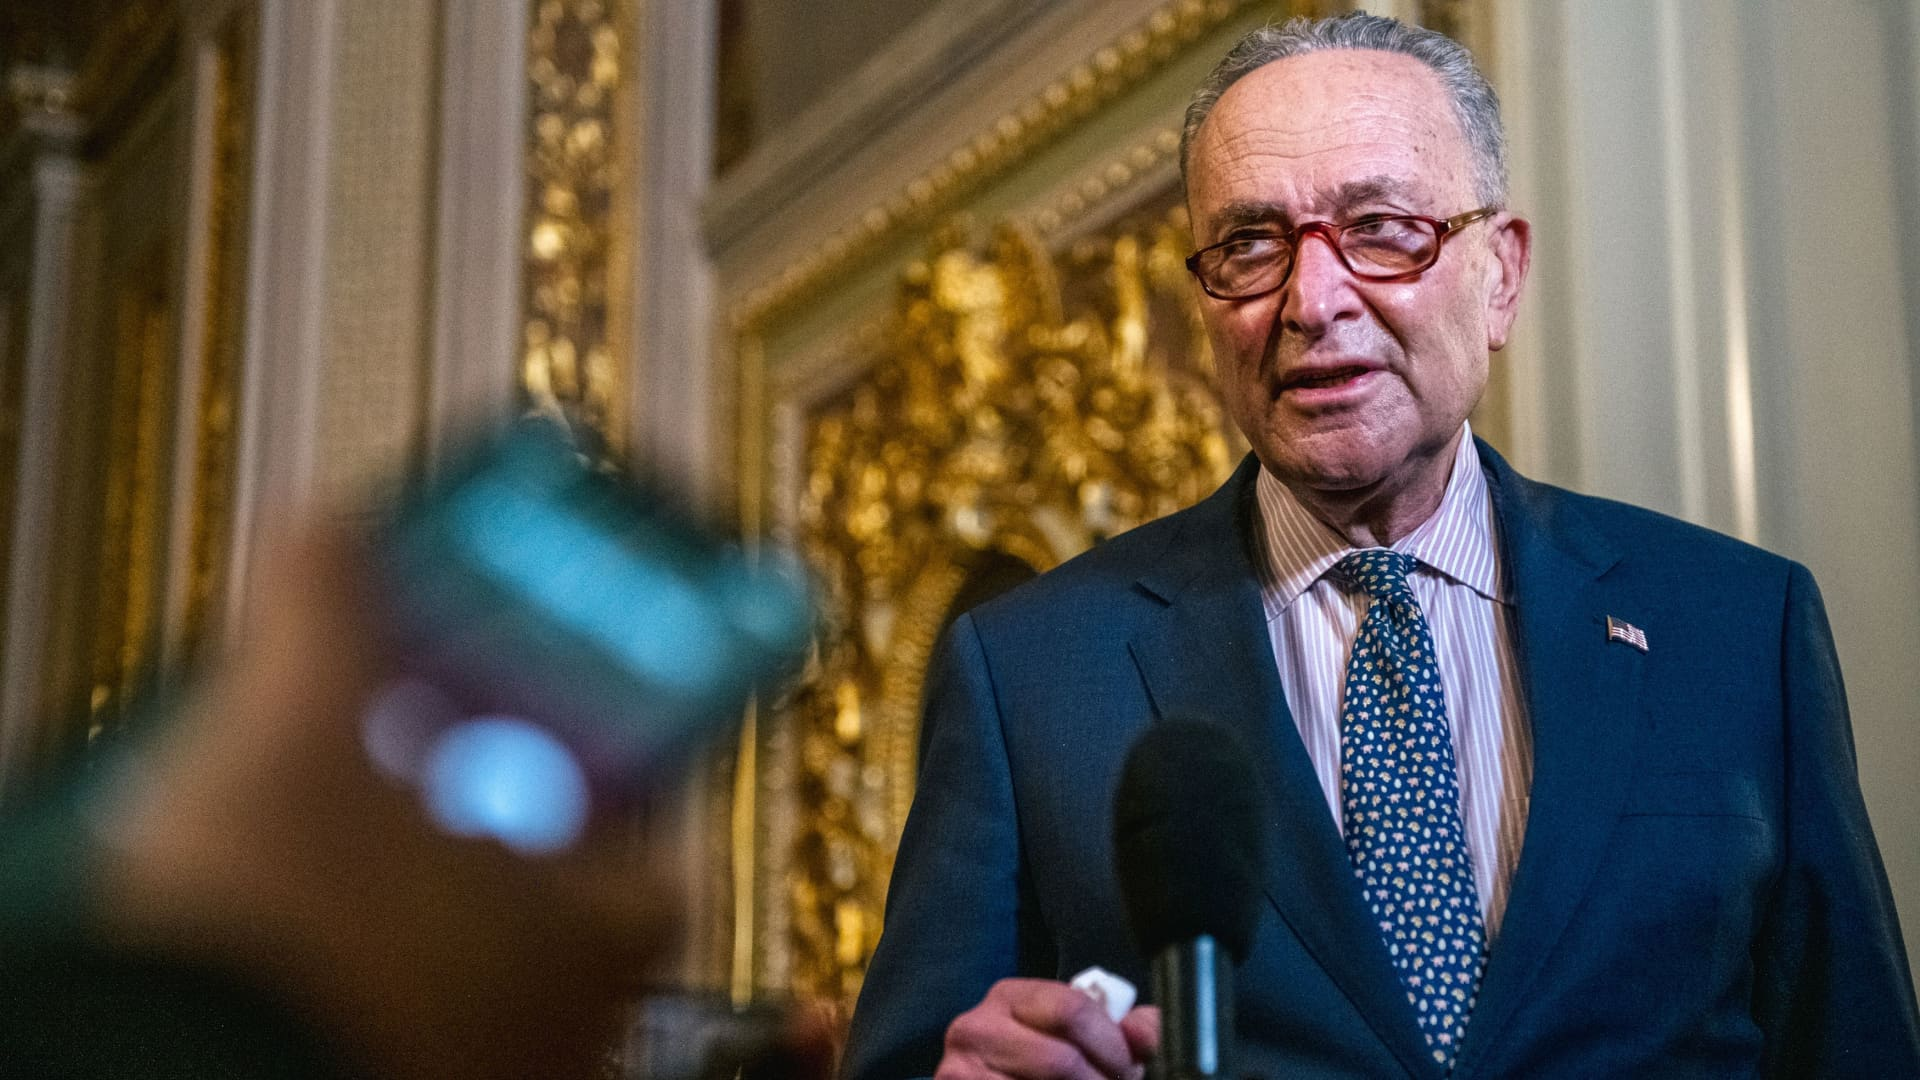 U.S. Senate Majority Leader Chuck Schumer (D-NY) speaks to reporters in The Senate Reception Room during the second day of Trump's second impeachment trial in Washington, February 10, 2021.